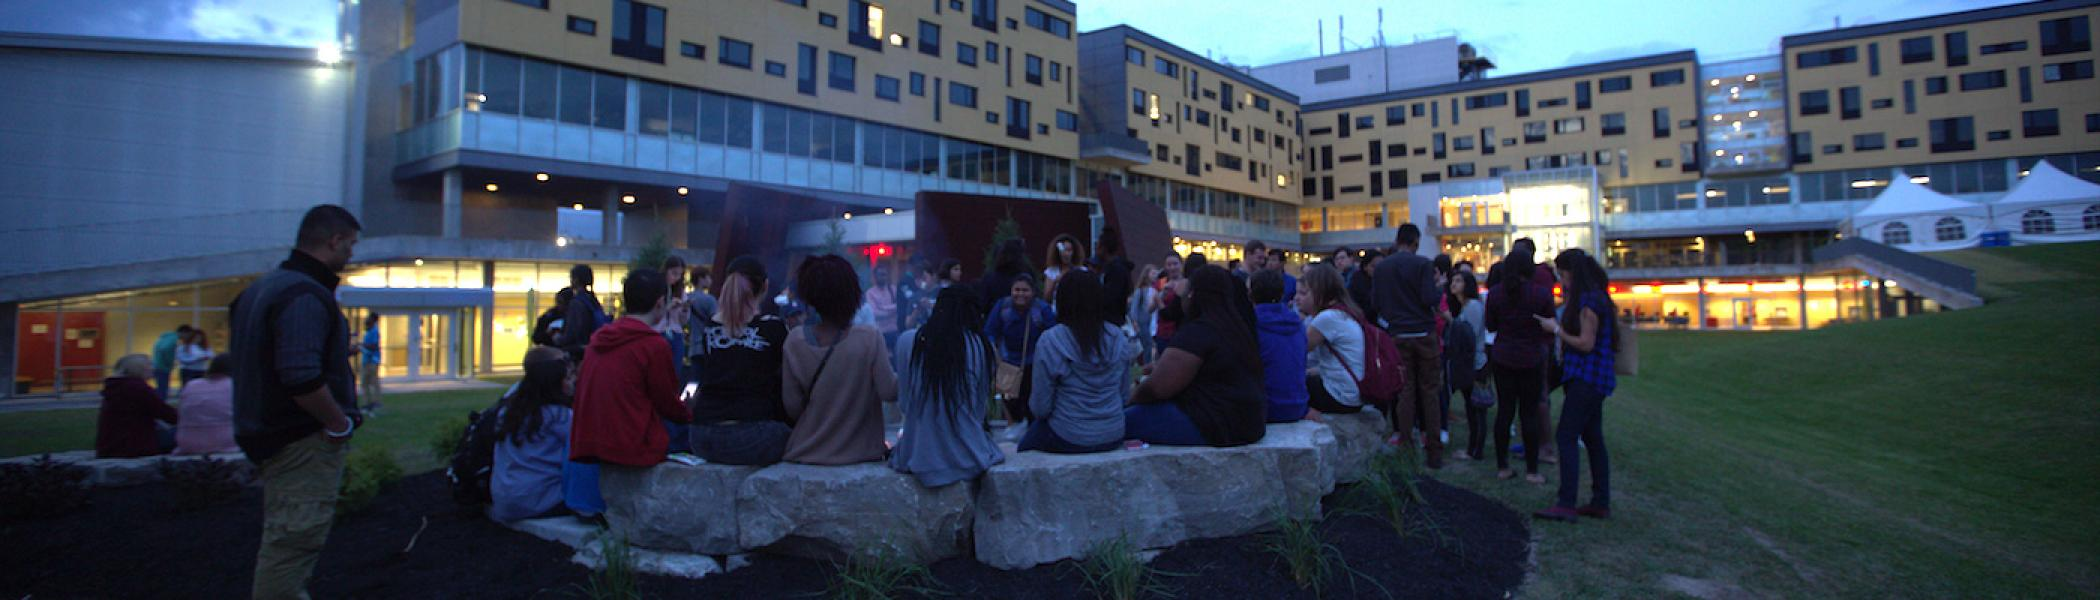 A large group of international students sitting around a campfire in front of Gzowski College at night